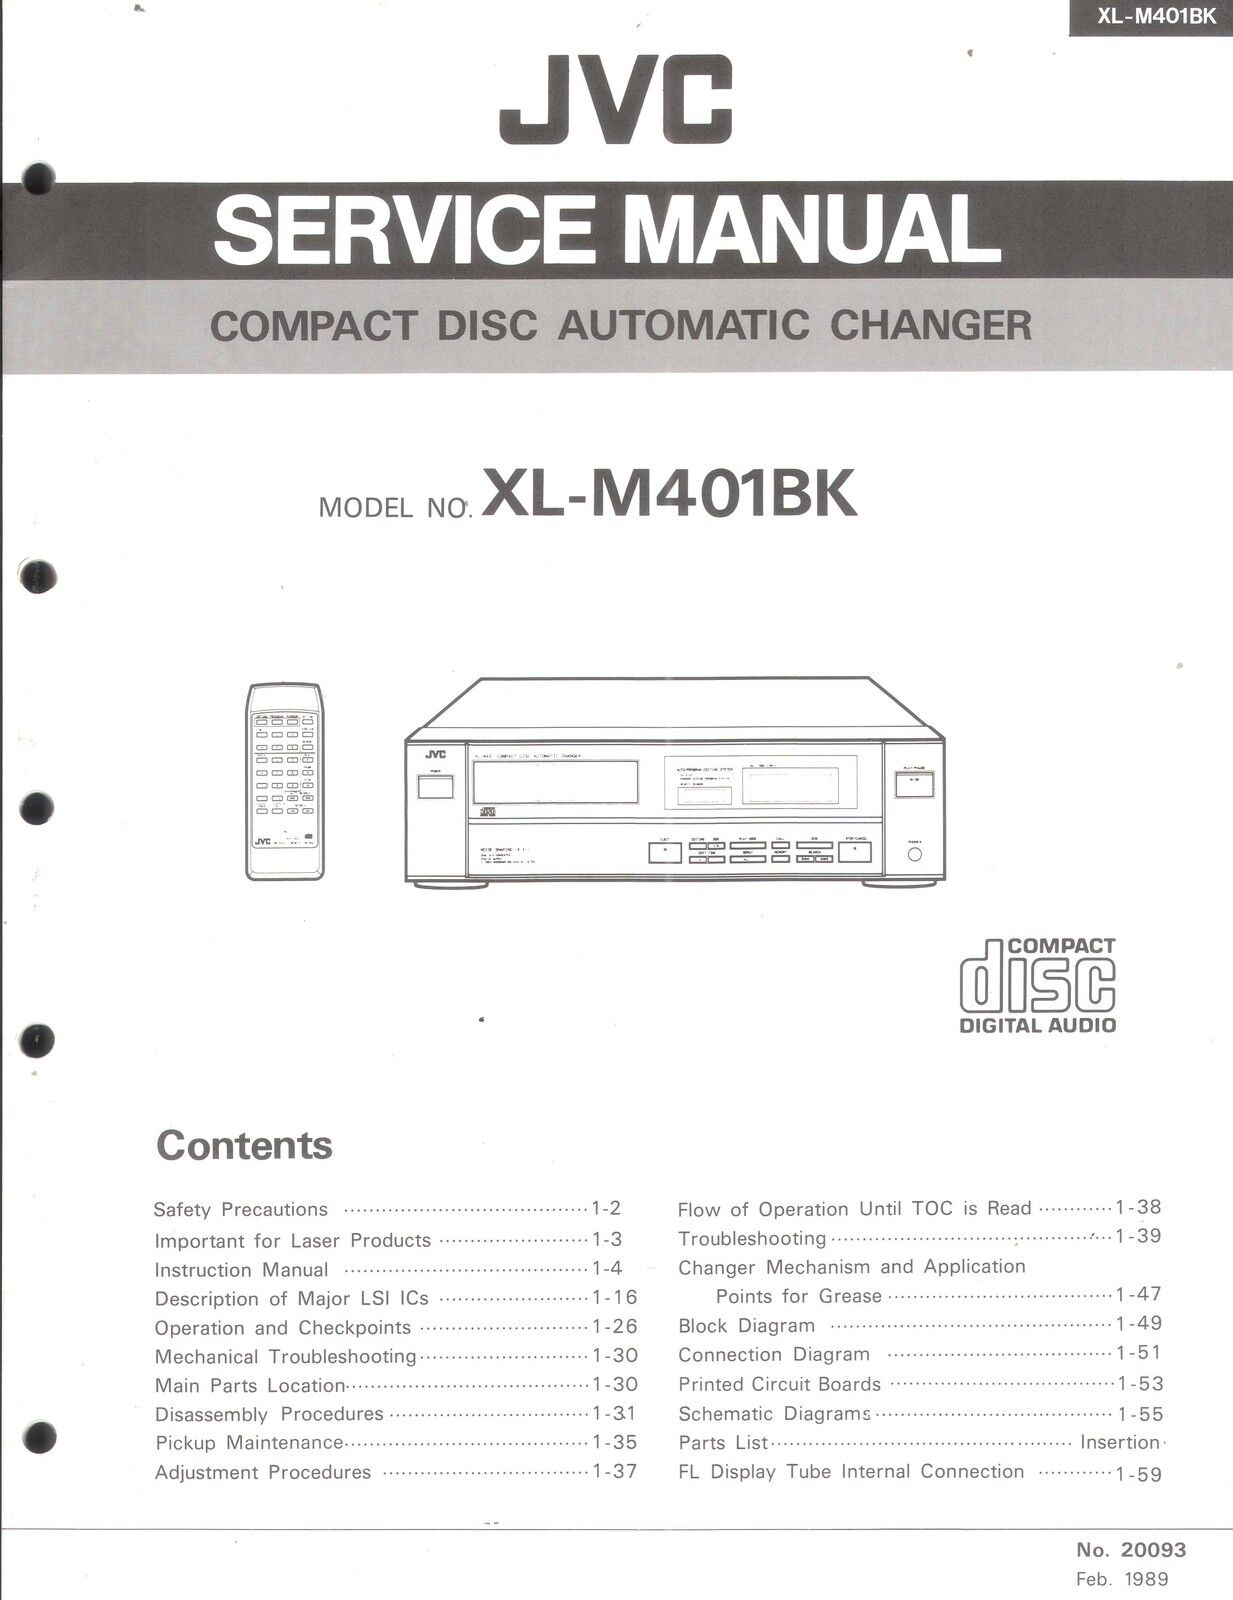 JVC Original Service Manual für XL-M 401 1 sur 1Seulement 1 disponible ...